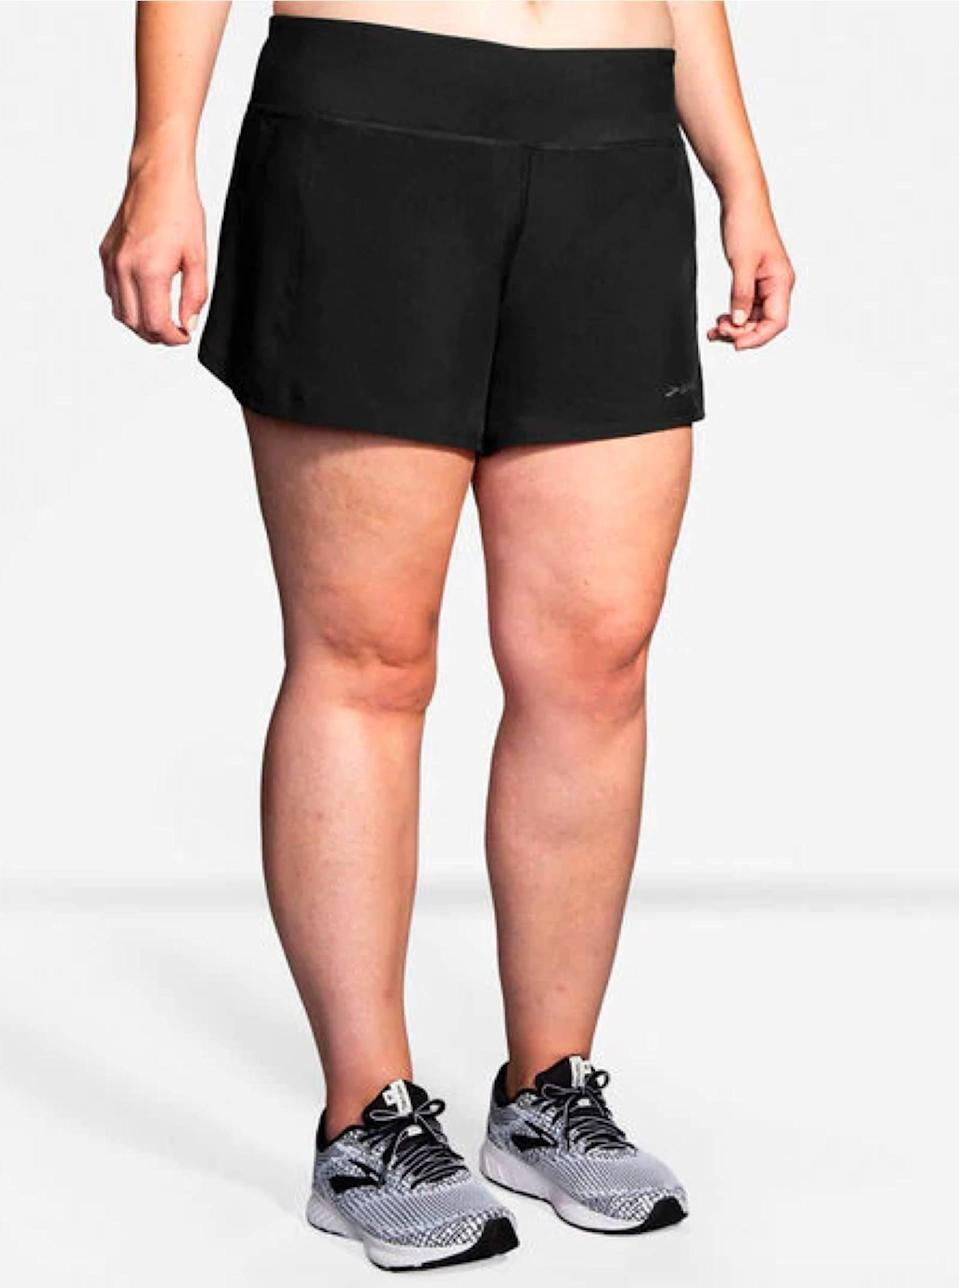 """""""The wide spandex waistband on these shorts keep them from moving around for my usual 5Ks, and I appreciate that the fabric doesn't cling. These workout shorts also have a sweat-wicking brief liner, which is clutch for sticky summer mornings."""" —<em>D.P.</em> $48, Brooks. <a href=""""https://www.brooksrunning.com/en_us/chaser-womens-running-shorts-5inch/221255.html"""" rel=""""nofollow noopener"""" target=""""_blank"""" data-ylk=""""slk:Get it now!"""" class=""""link rapid-noclick-resp"""">Get it now!</a>"""